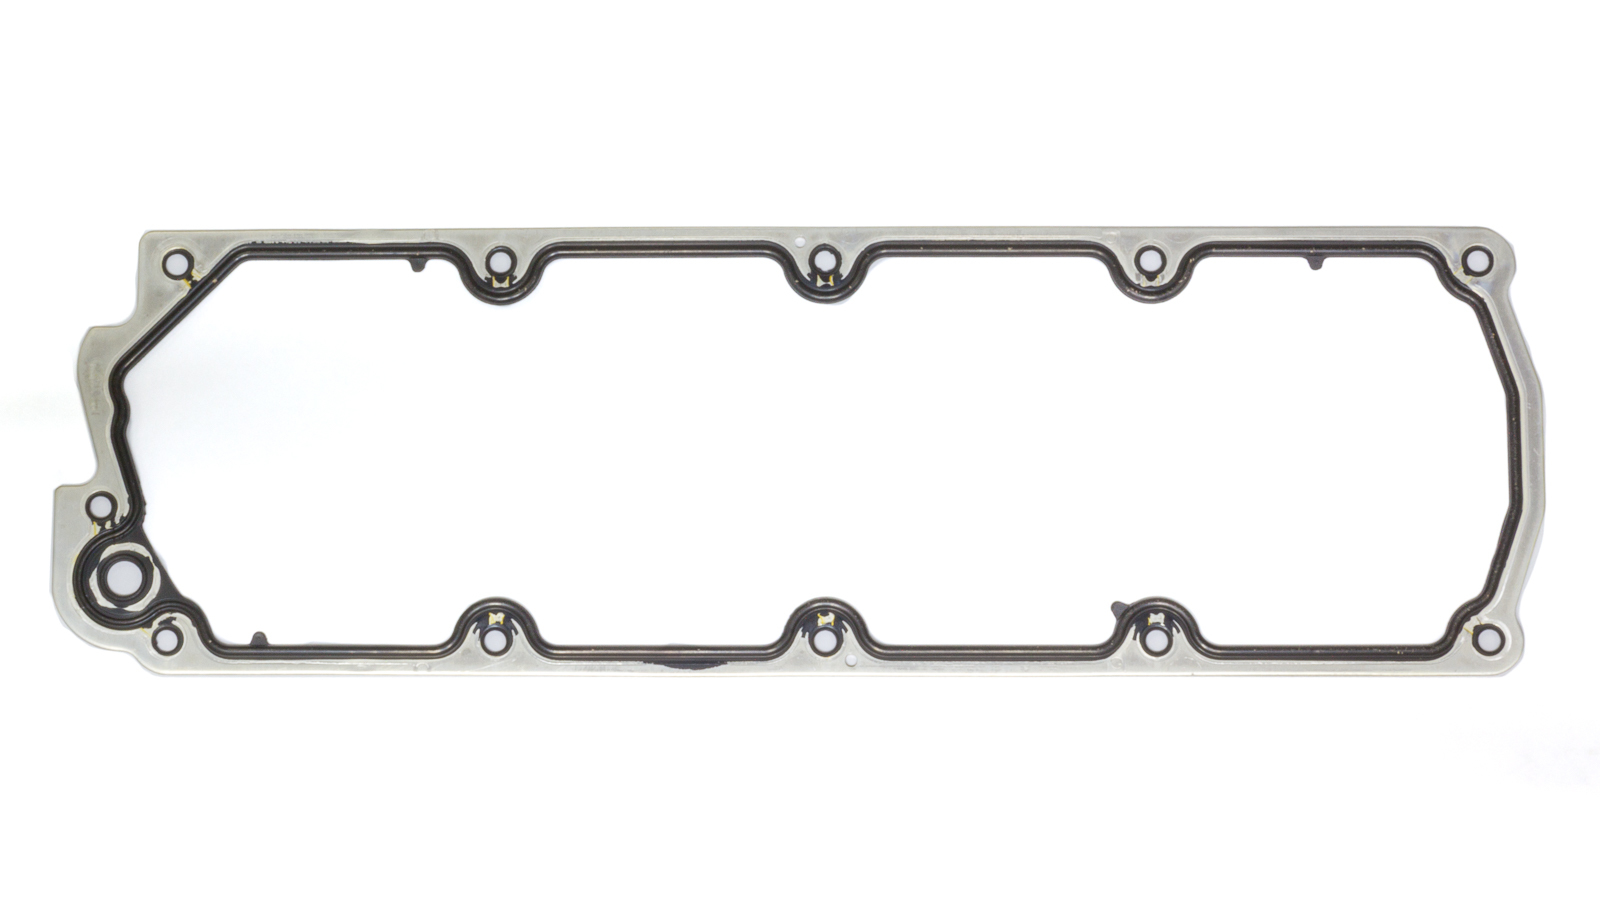 Chevrolet Performance Gasket - Engine Block Valley Cover